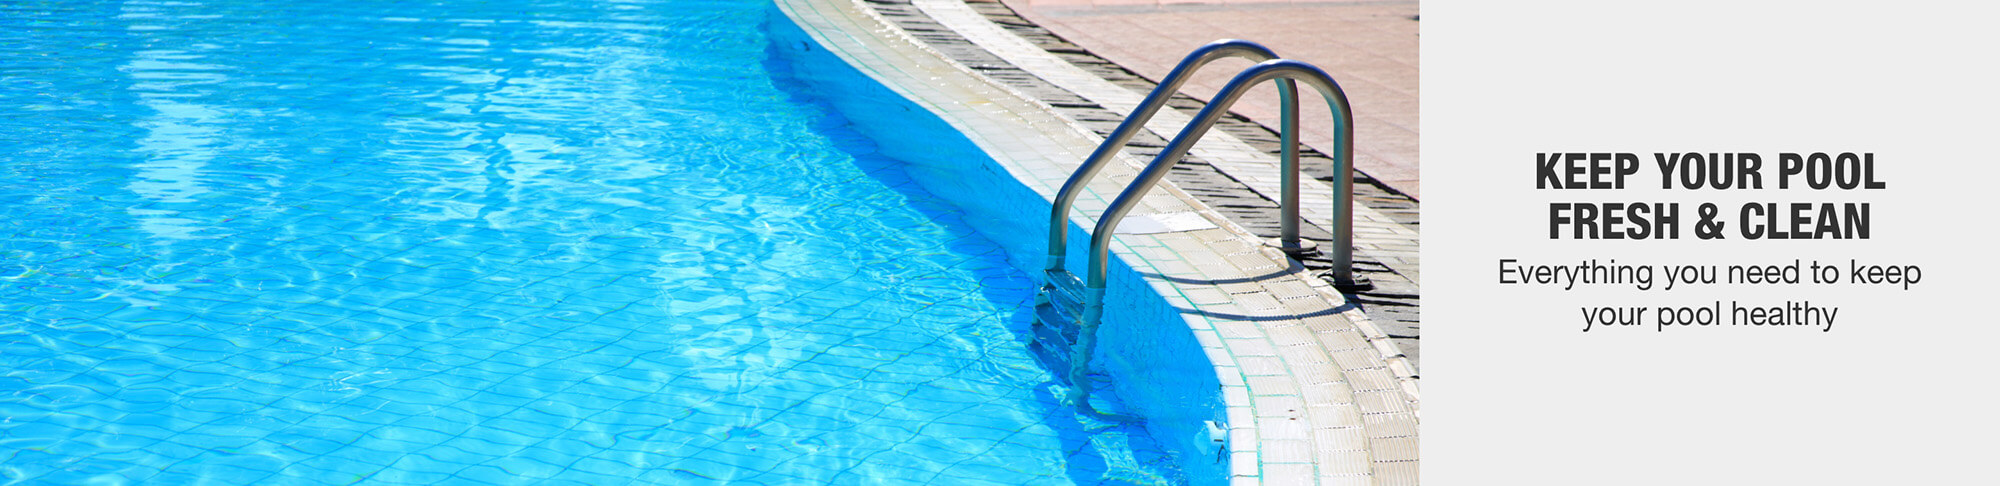 KEEP YOUR POOL  FRESH & CLEAN Everything you need to keep  your pool healthy